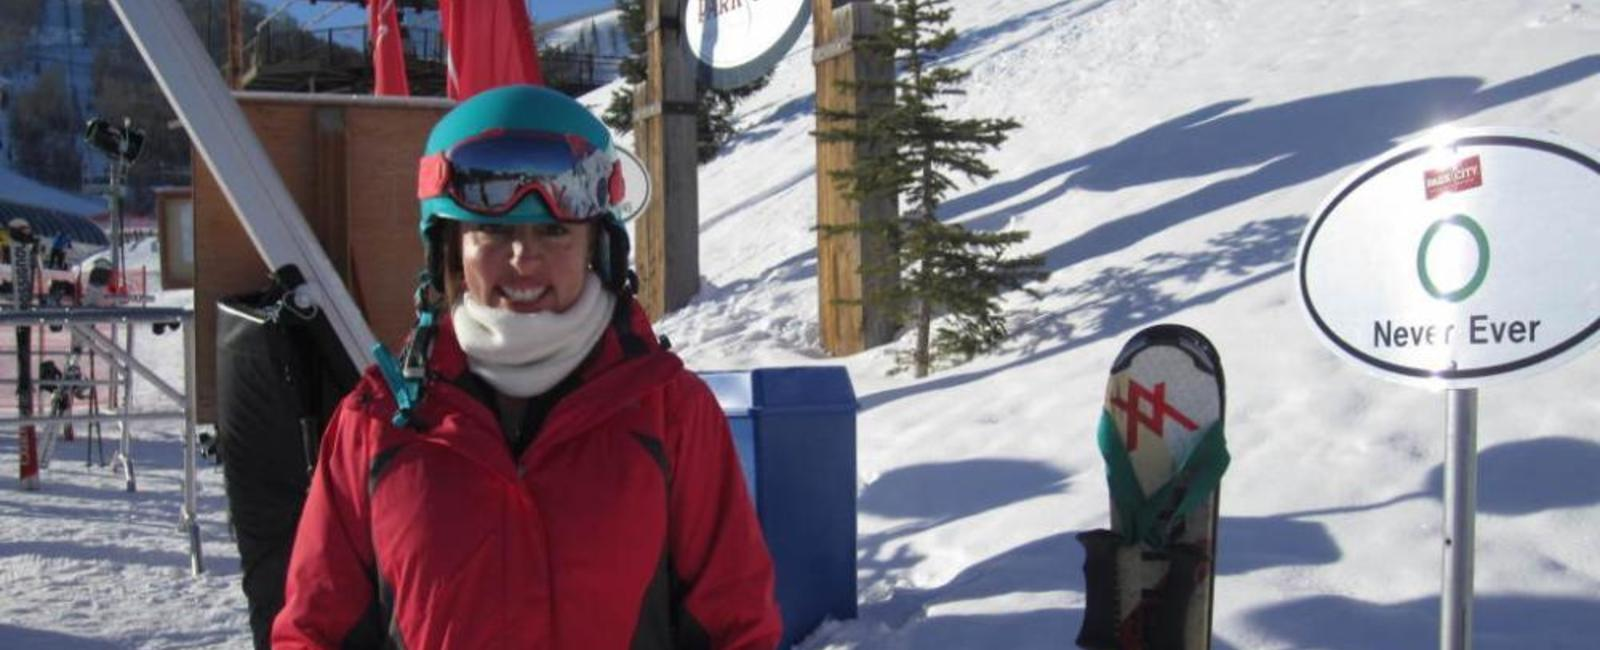 The First Day: Is skiing really learnable for adults?